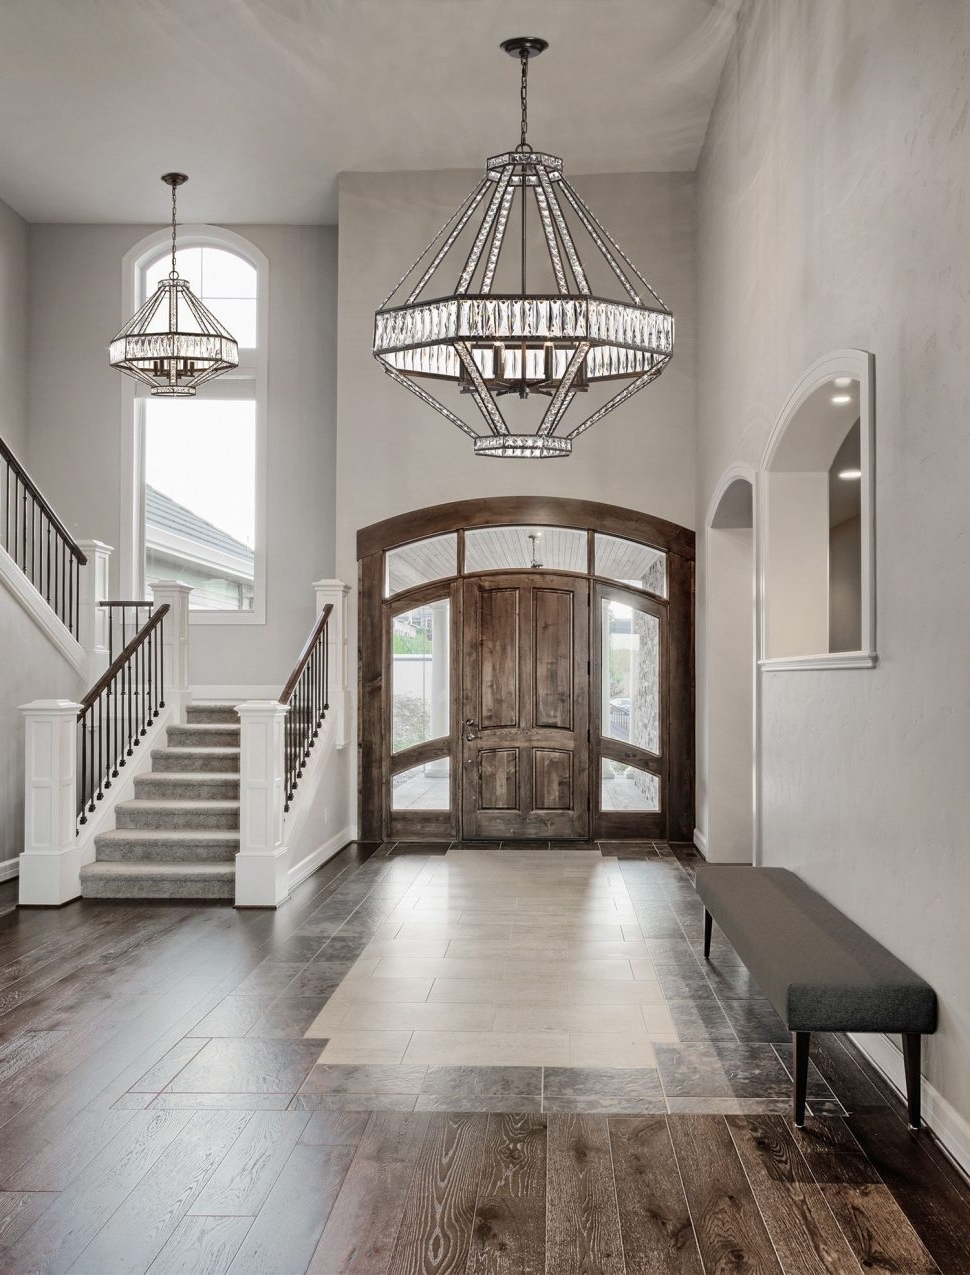 Chandeliers : Modern Hallway Chandeliers Ideas Best Photo Design With Most Current Hallway Chandeliers (View 6 of 15)